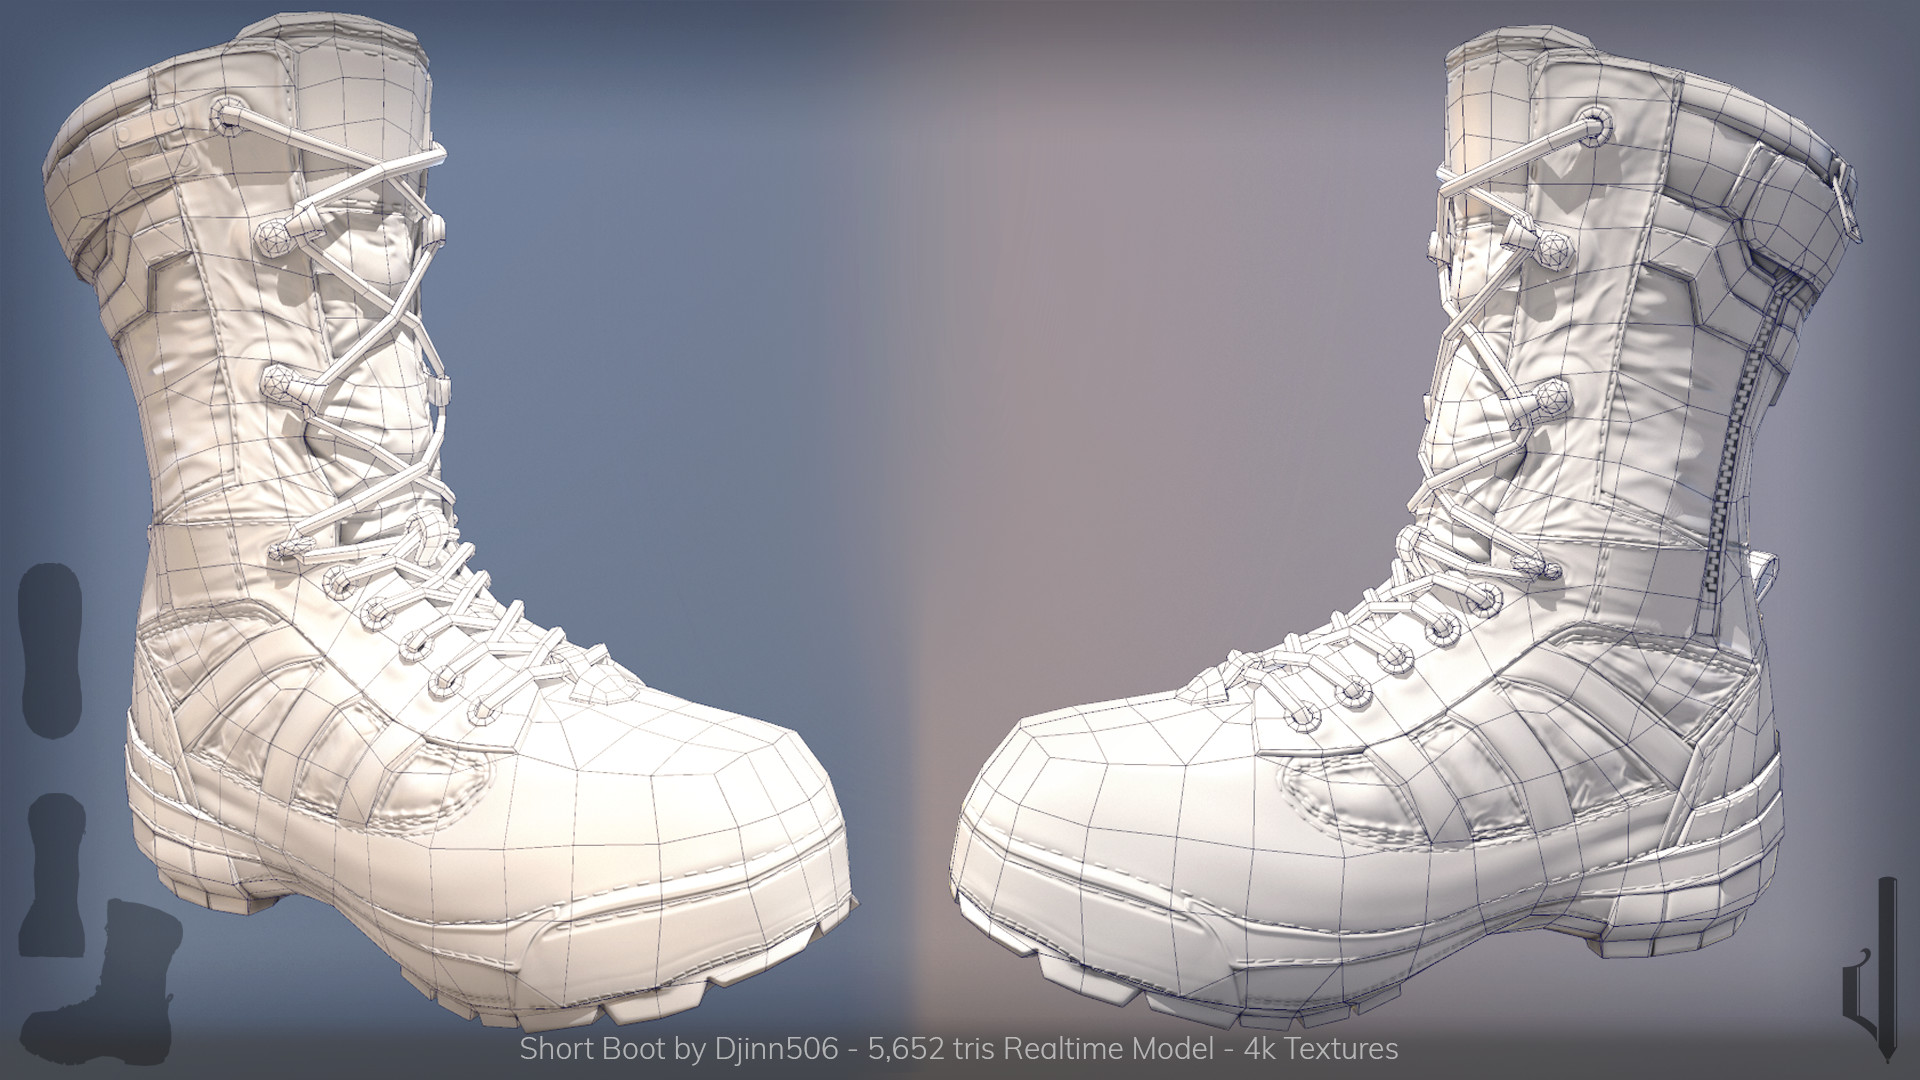 Djinn androsgyne shortboot wires